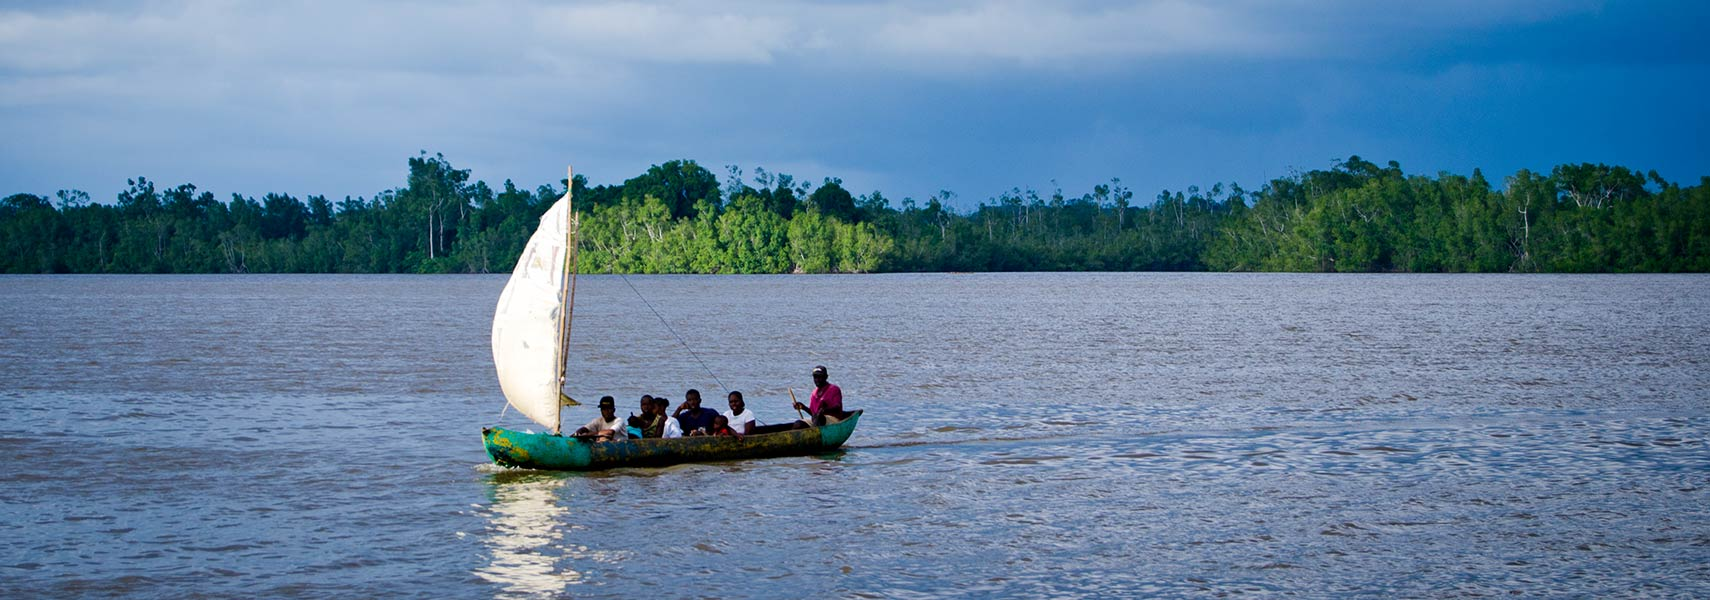 Boat on Cess river in Rivercess County of Liberia